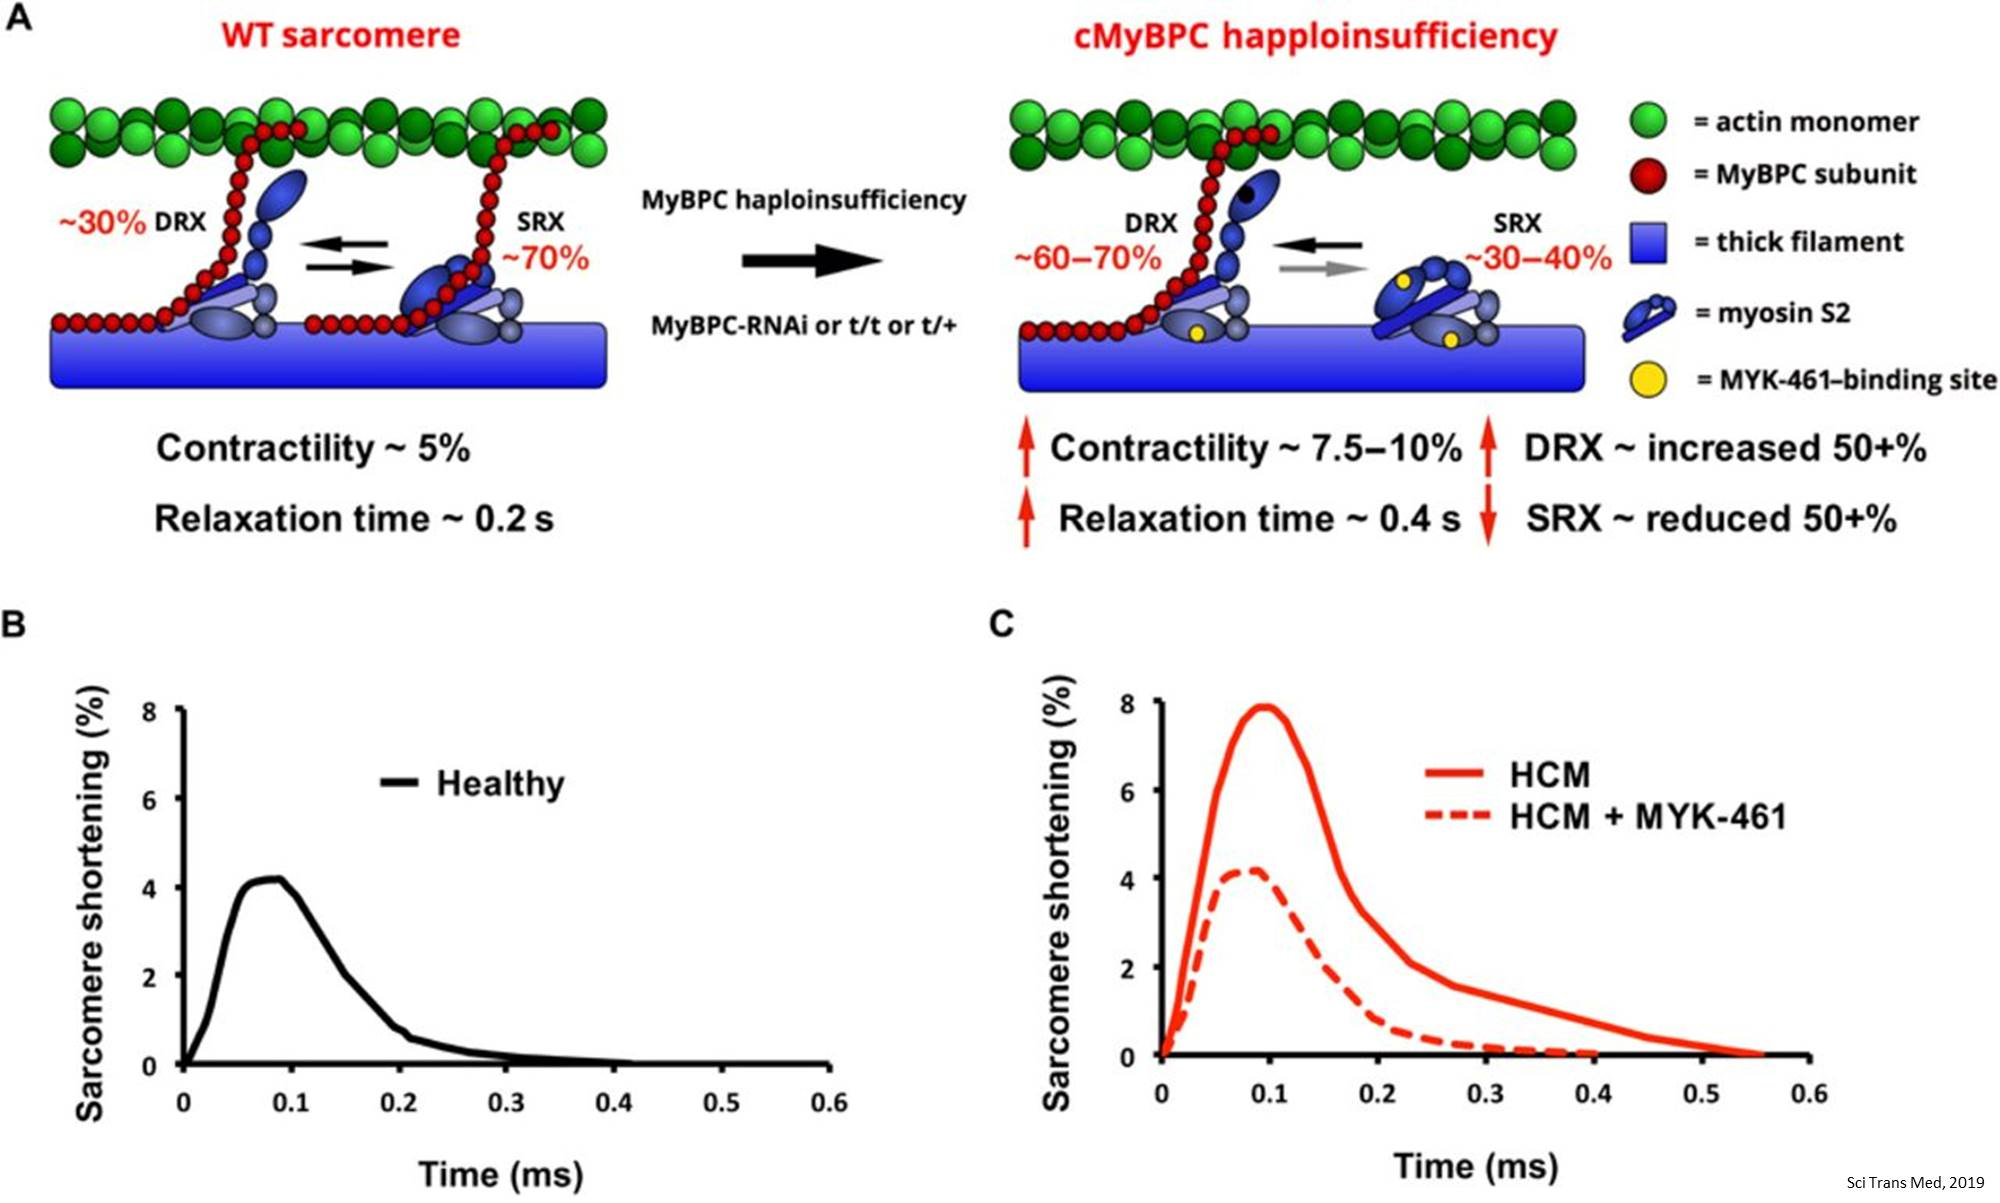 Hypertrophic cardiomyopathy mutations in MYBPC3 dysregulate myosin